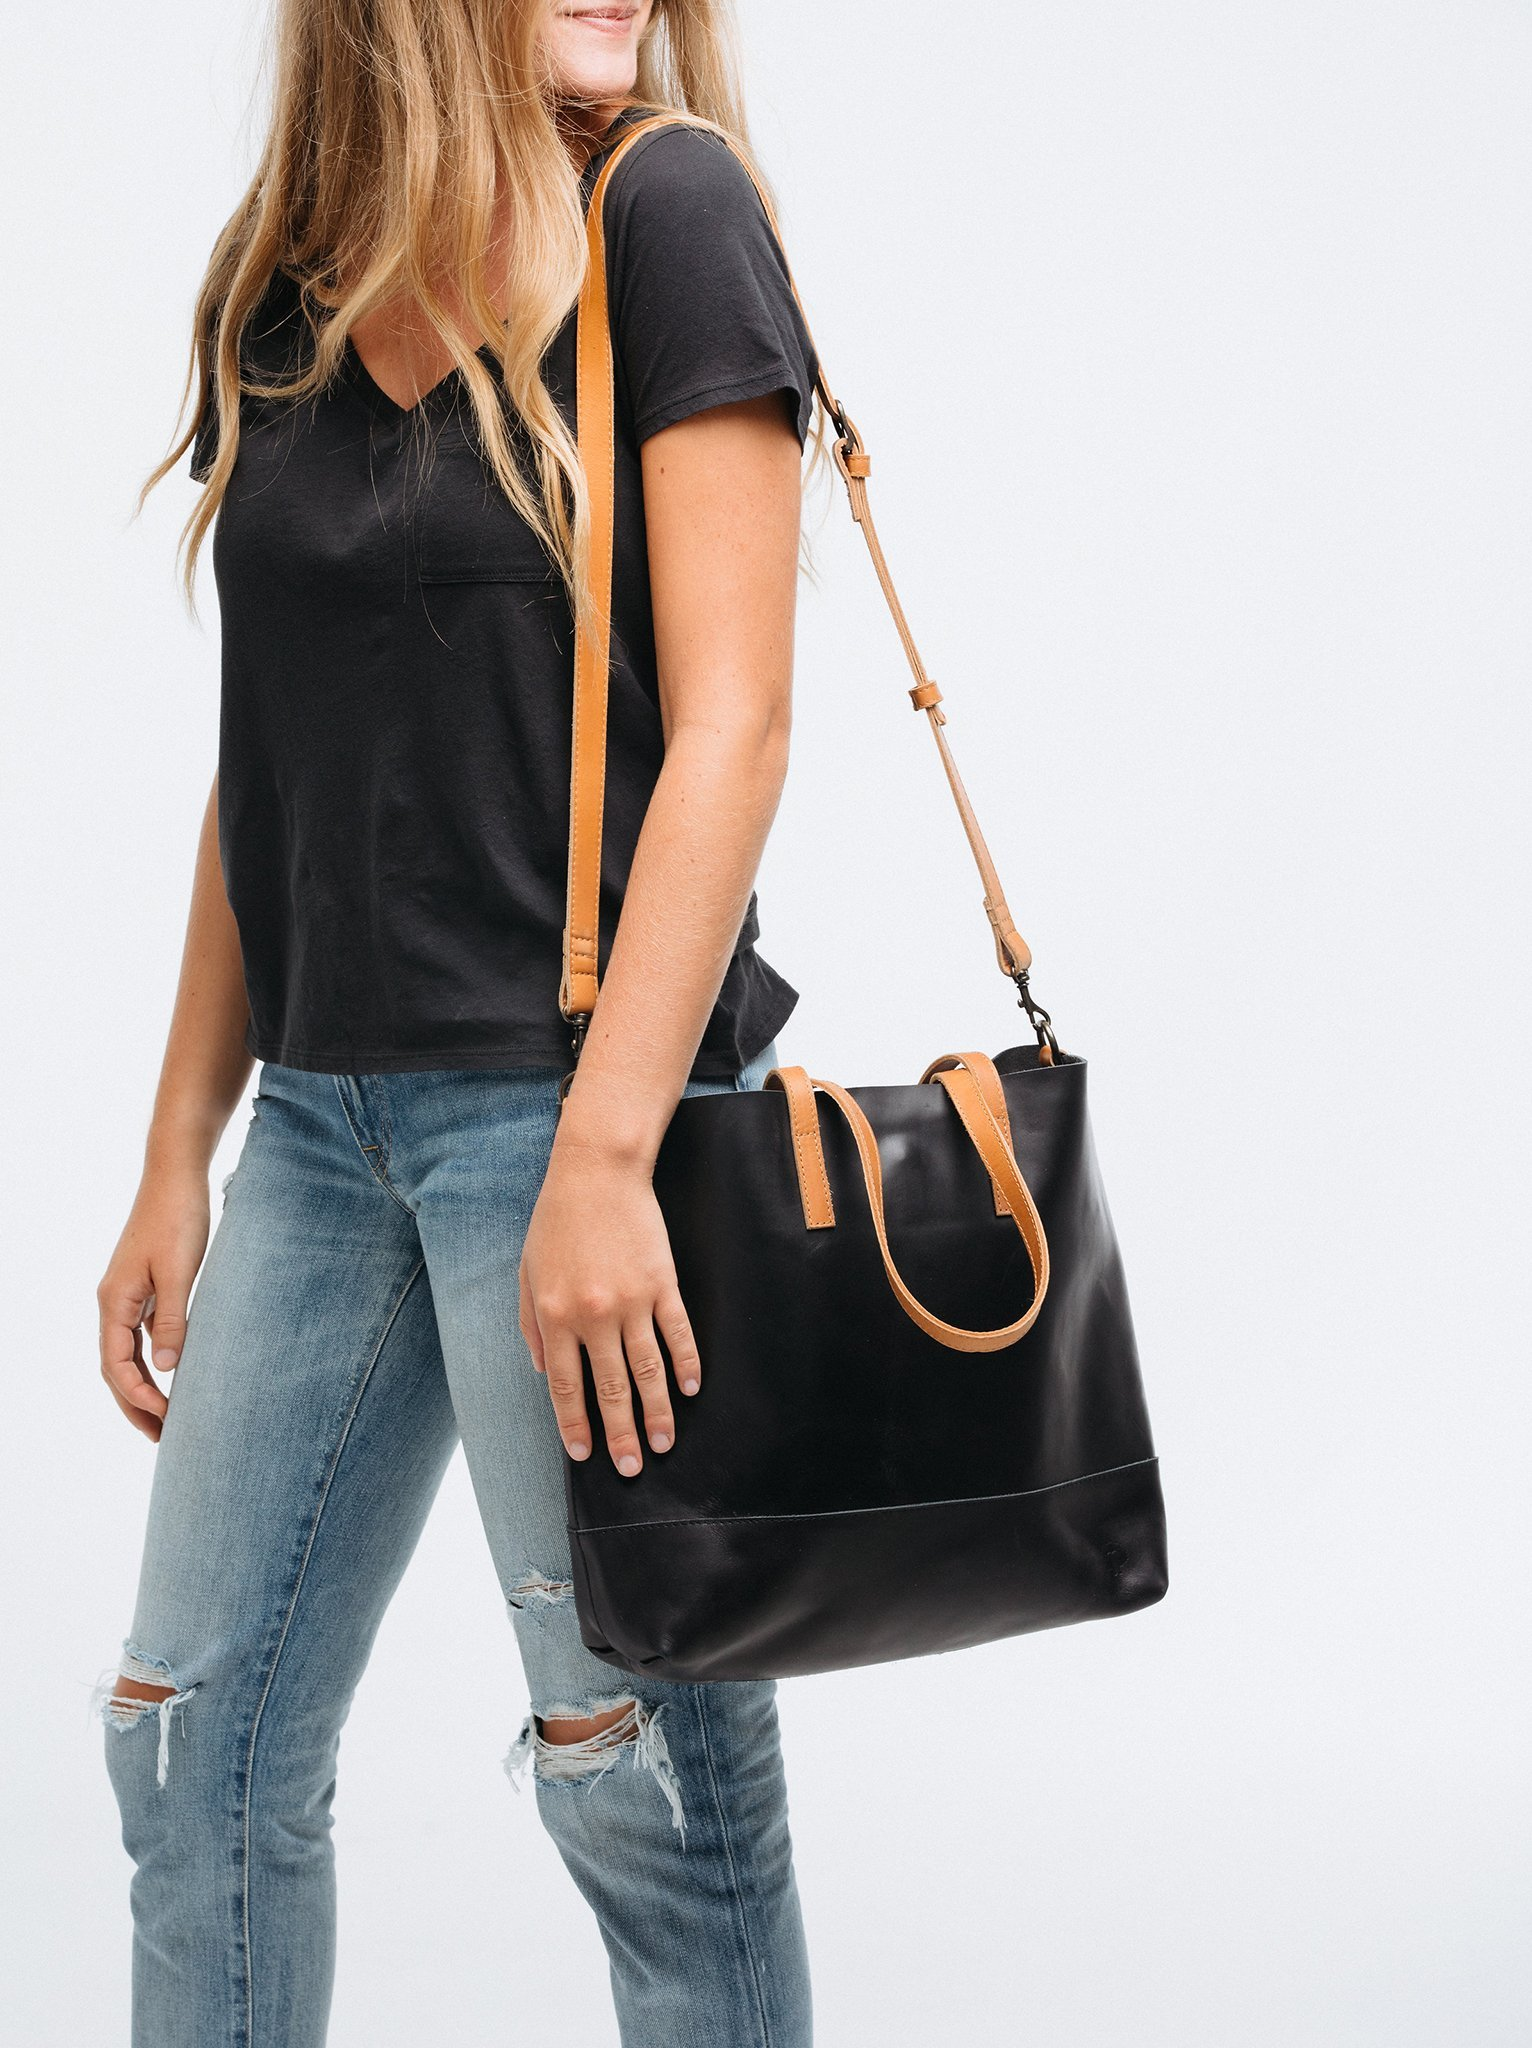 132b21380833 Is This the Best Travel Tote of All Time? | Leather ideas ...